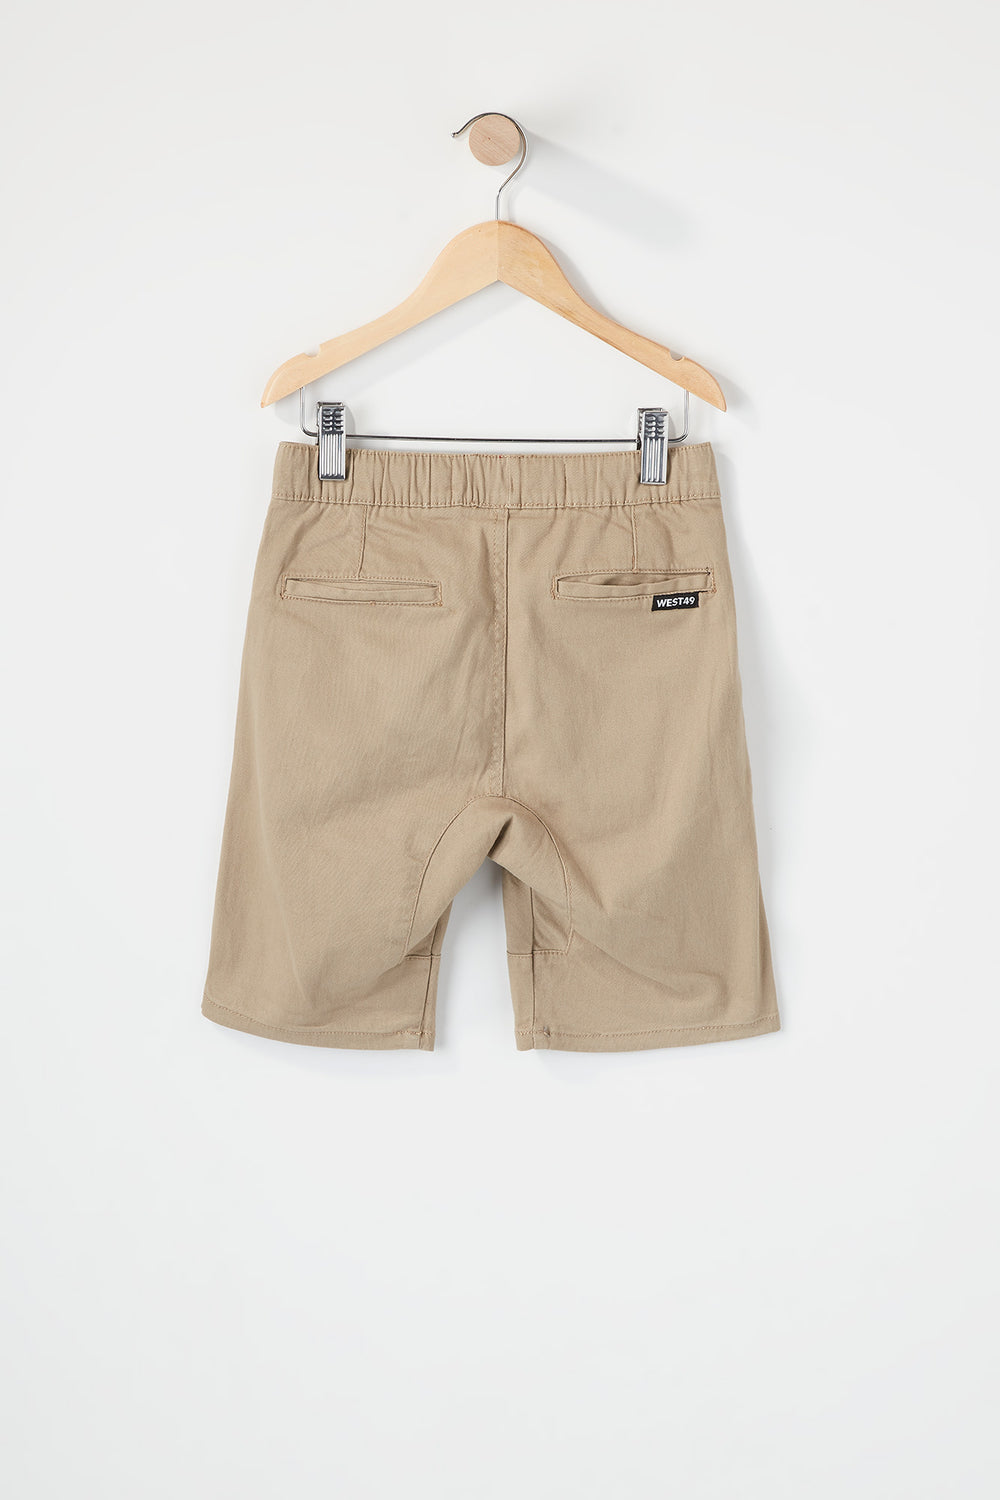 West49 Boys Jogger Short Sand